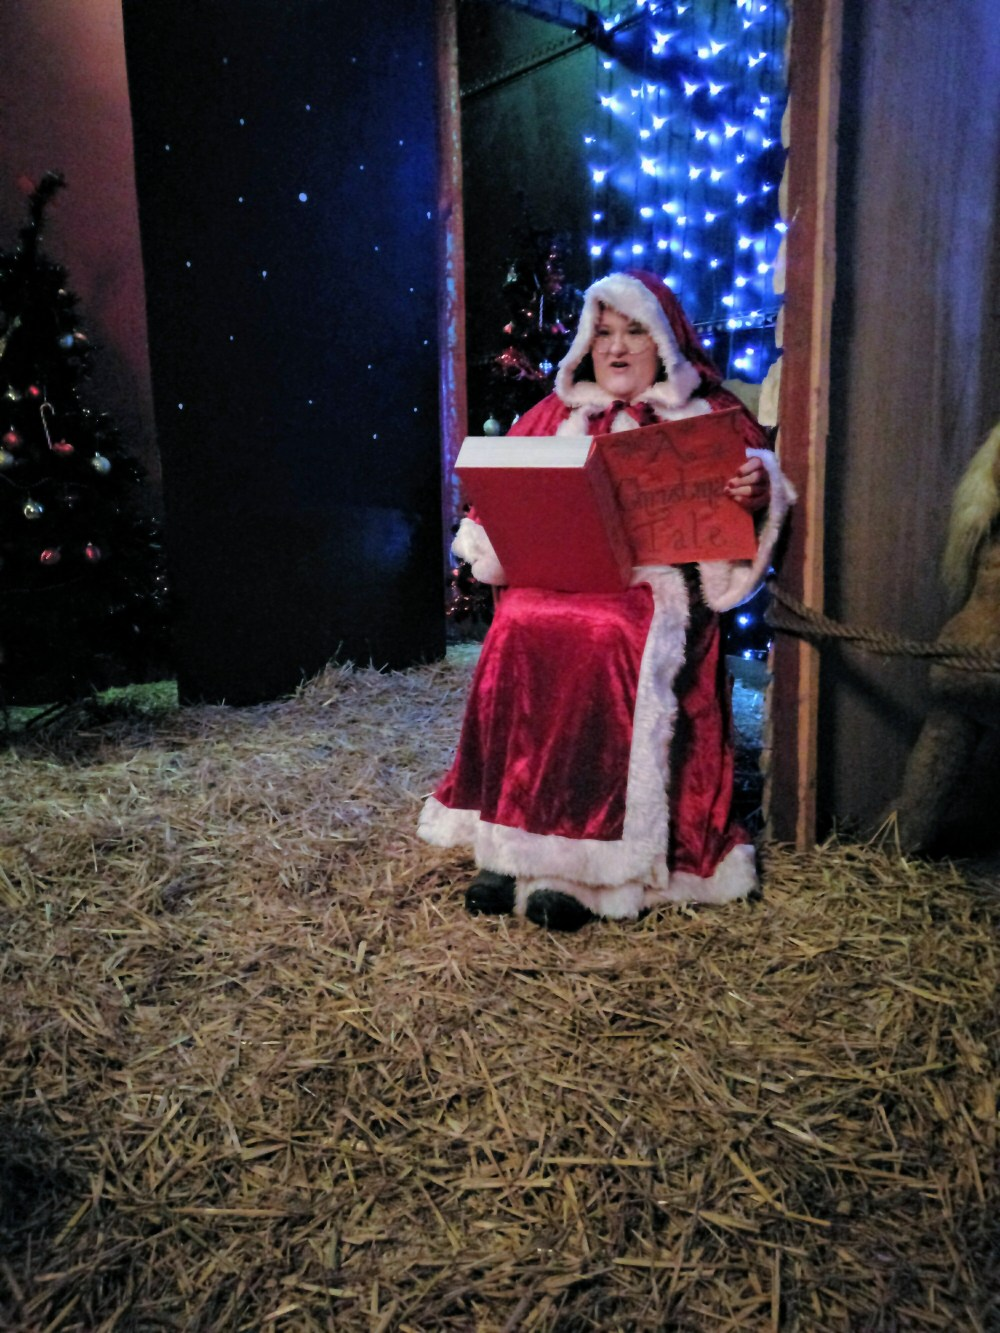 A lady dressed as Mrs Claus, sat on a chair reading a book.